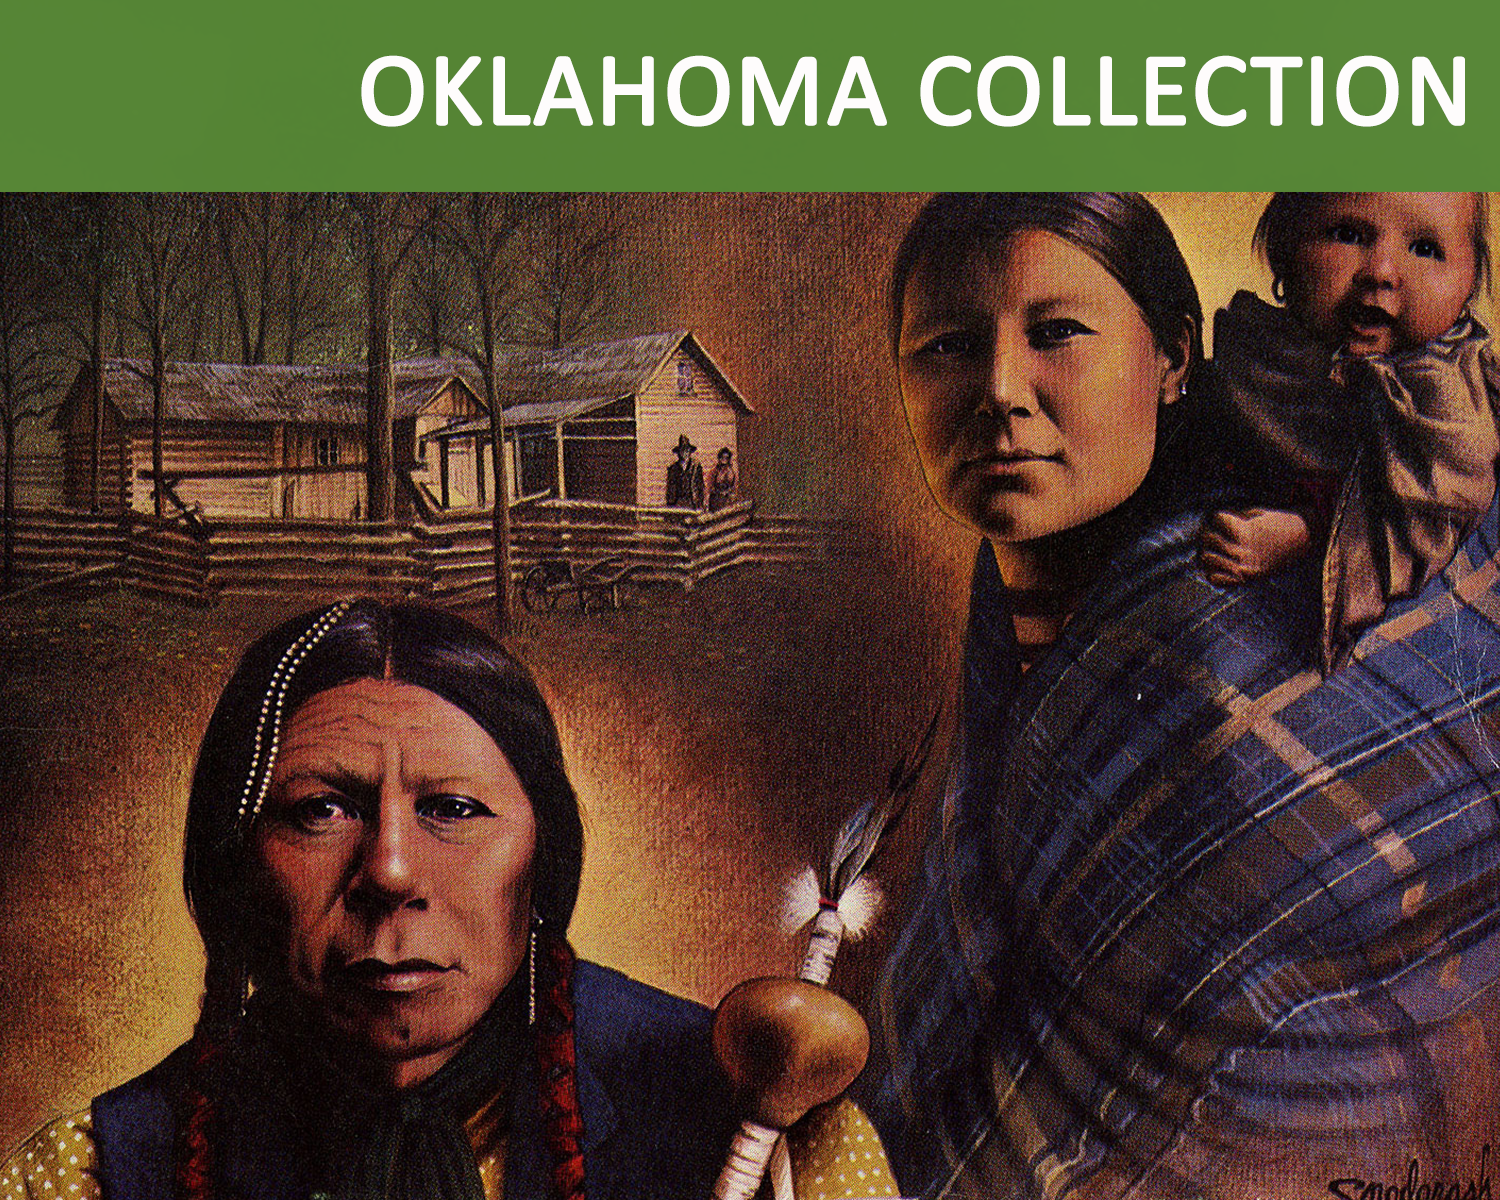 Oklahoma Cultural Collection